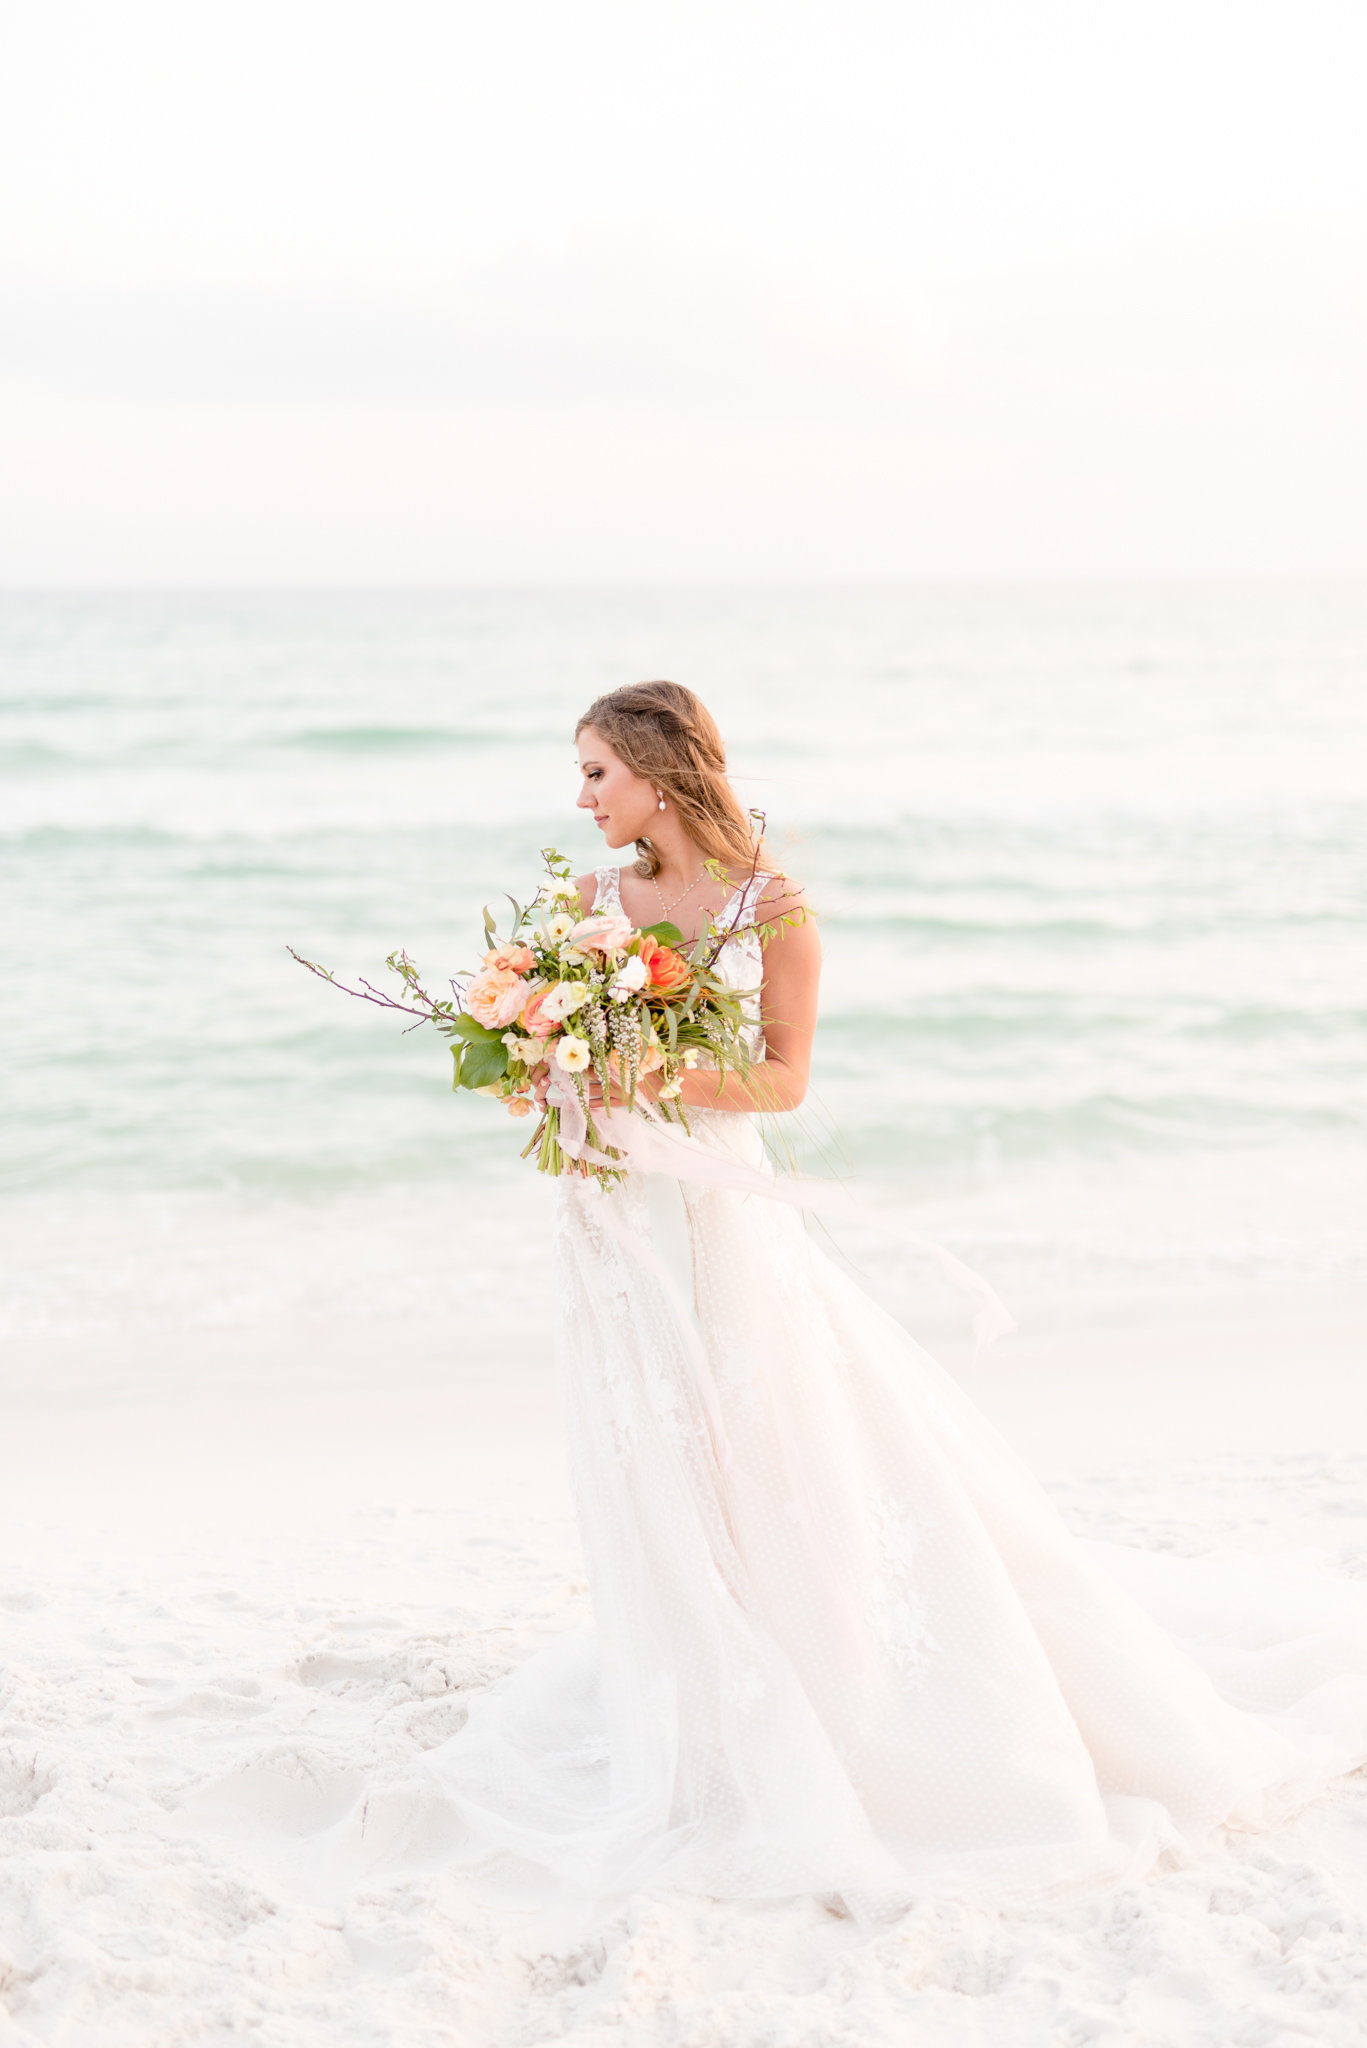 Bride stands on beach with bouquet.